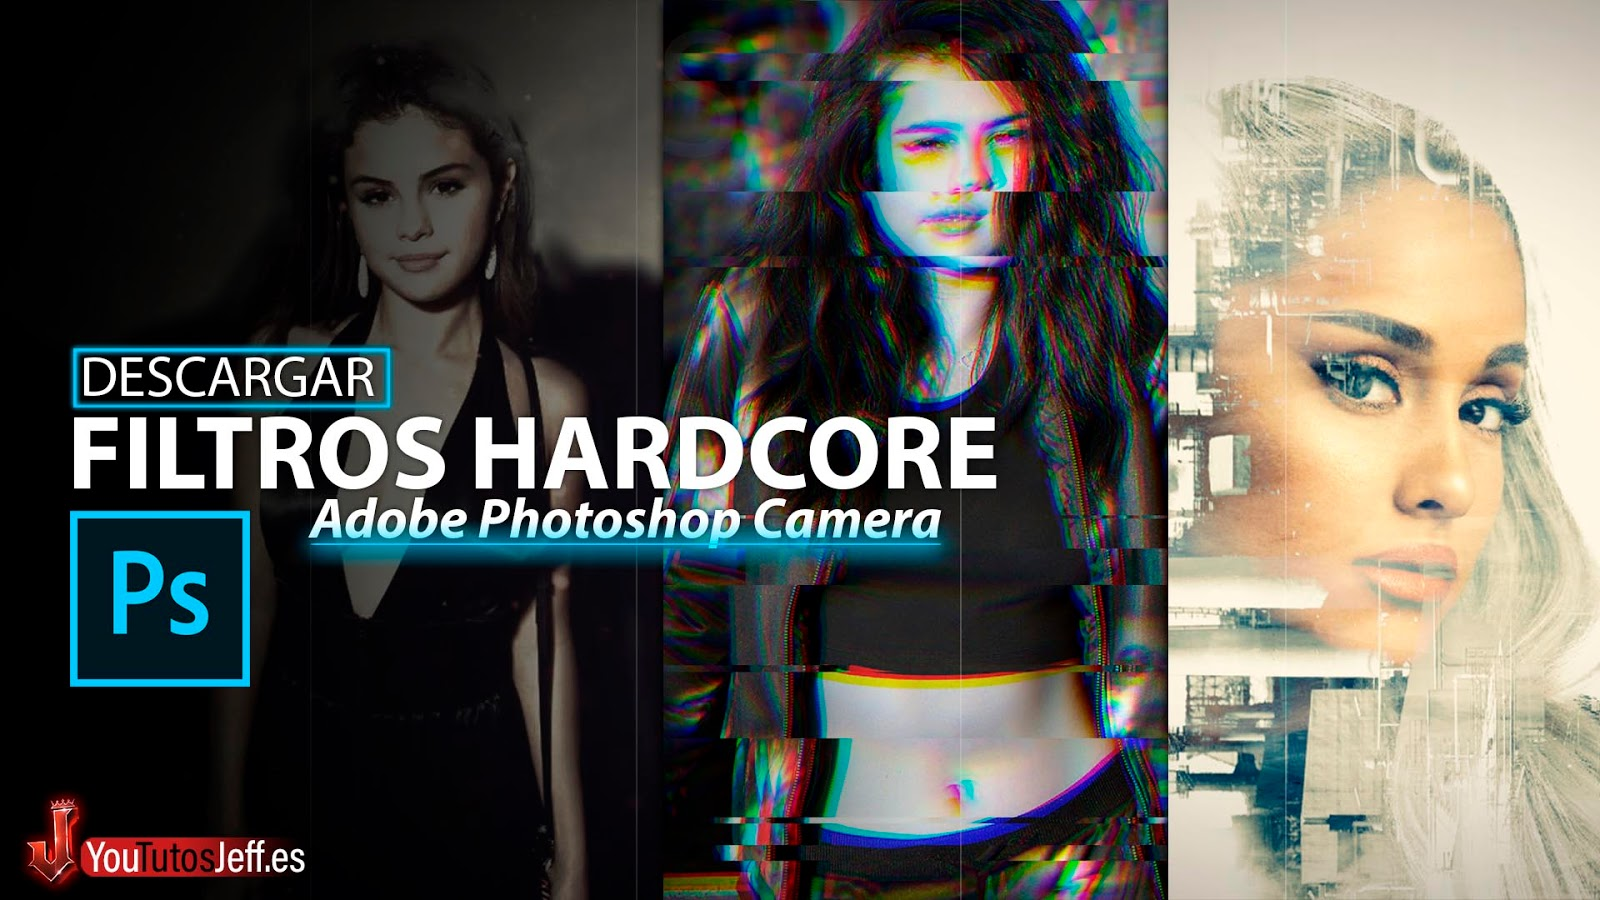 Filtros a Otro Nivel 🔥 Descargar Adobe Photoshop Camera Android